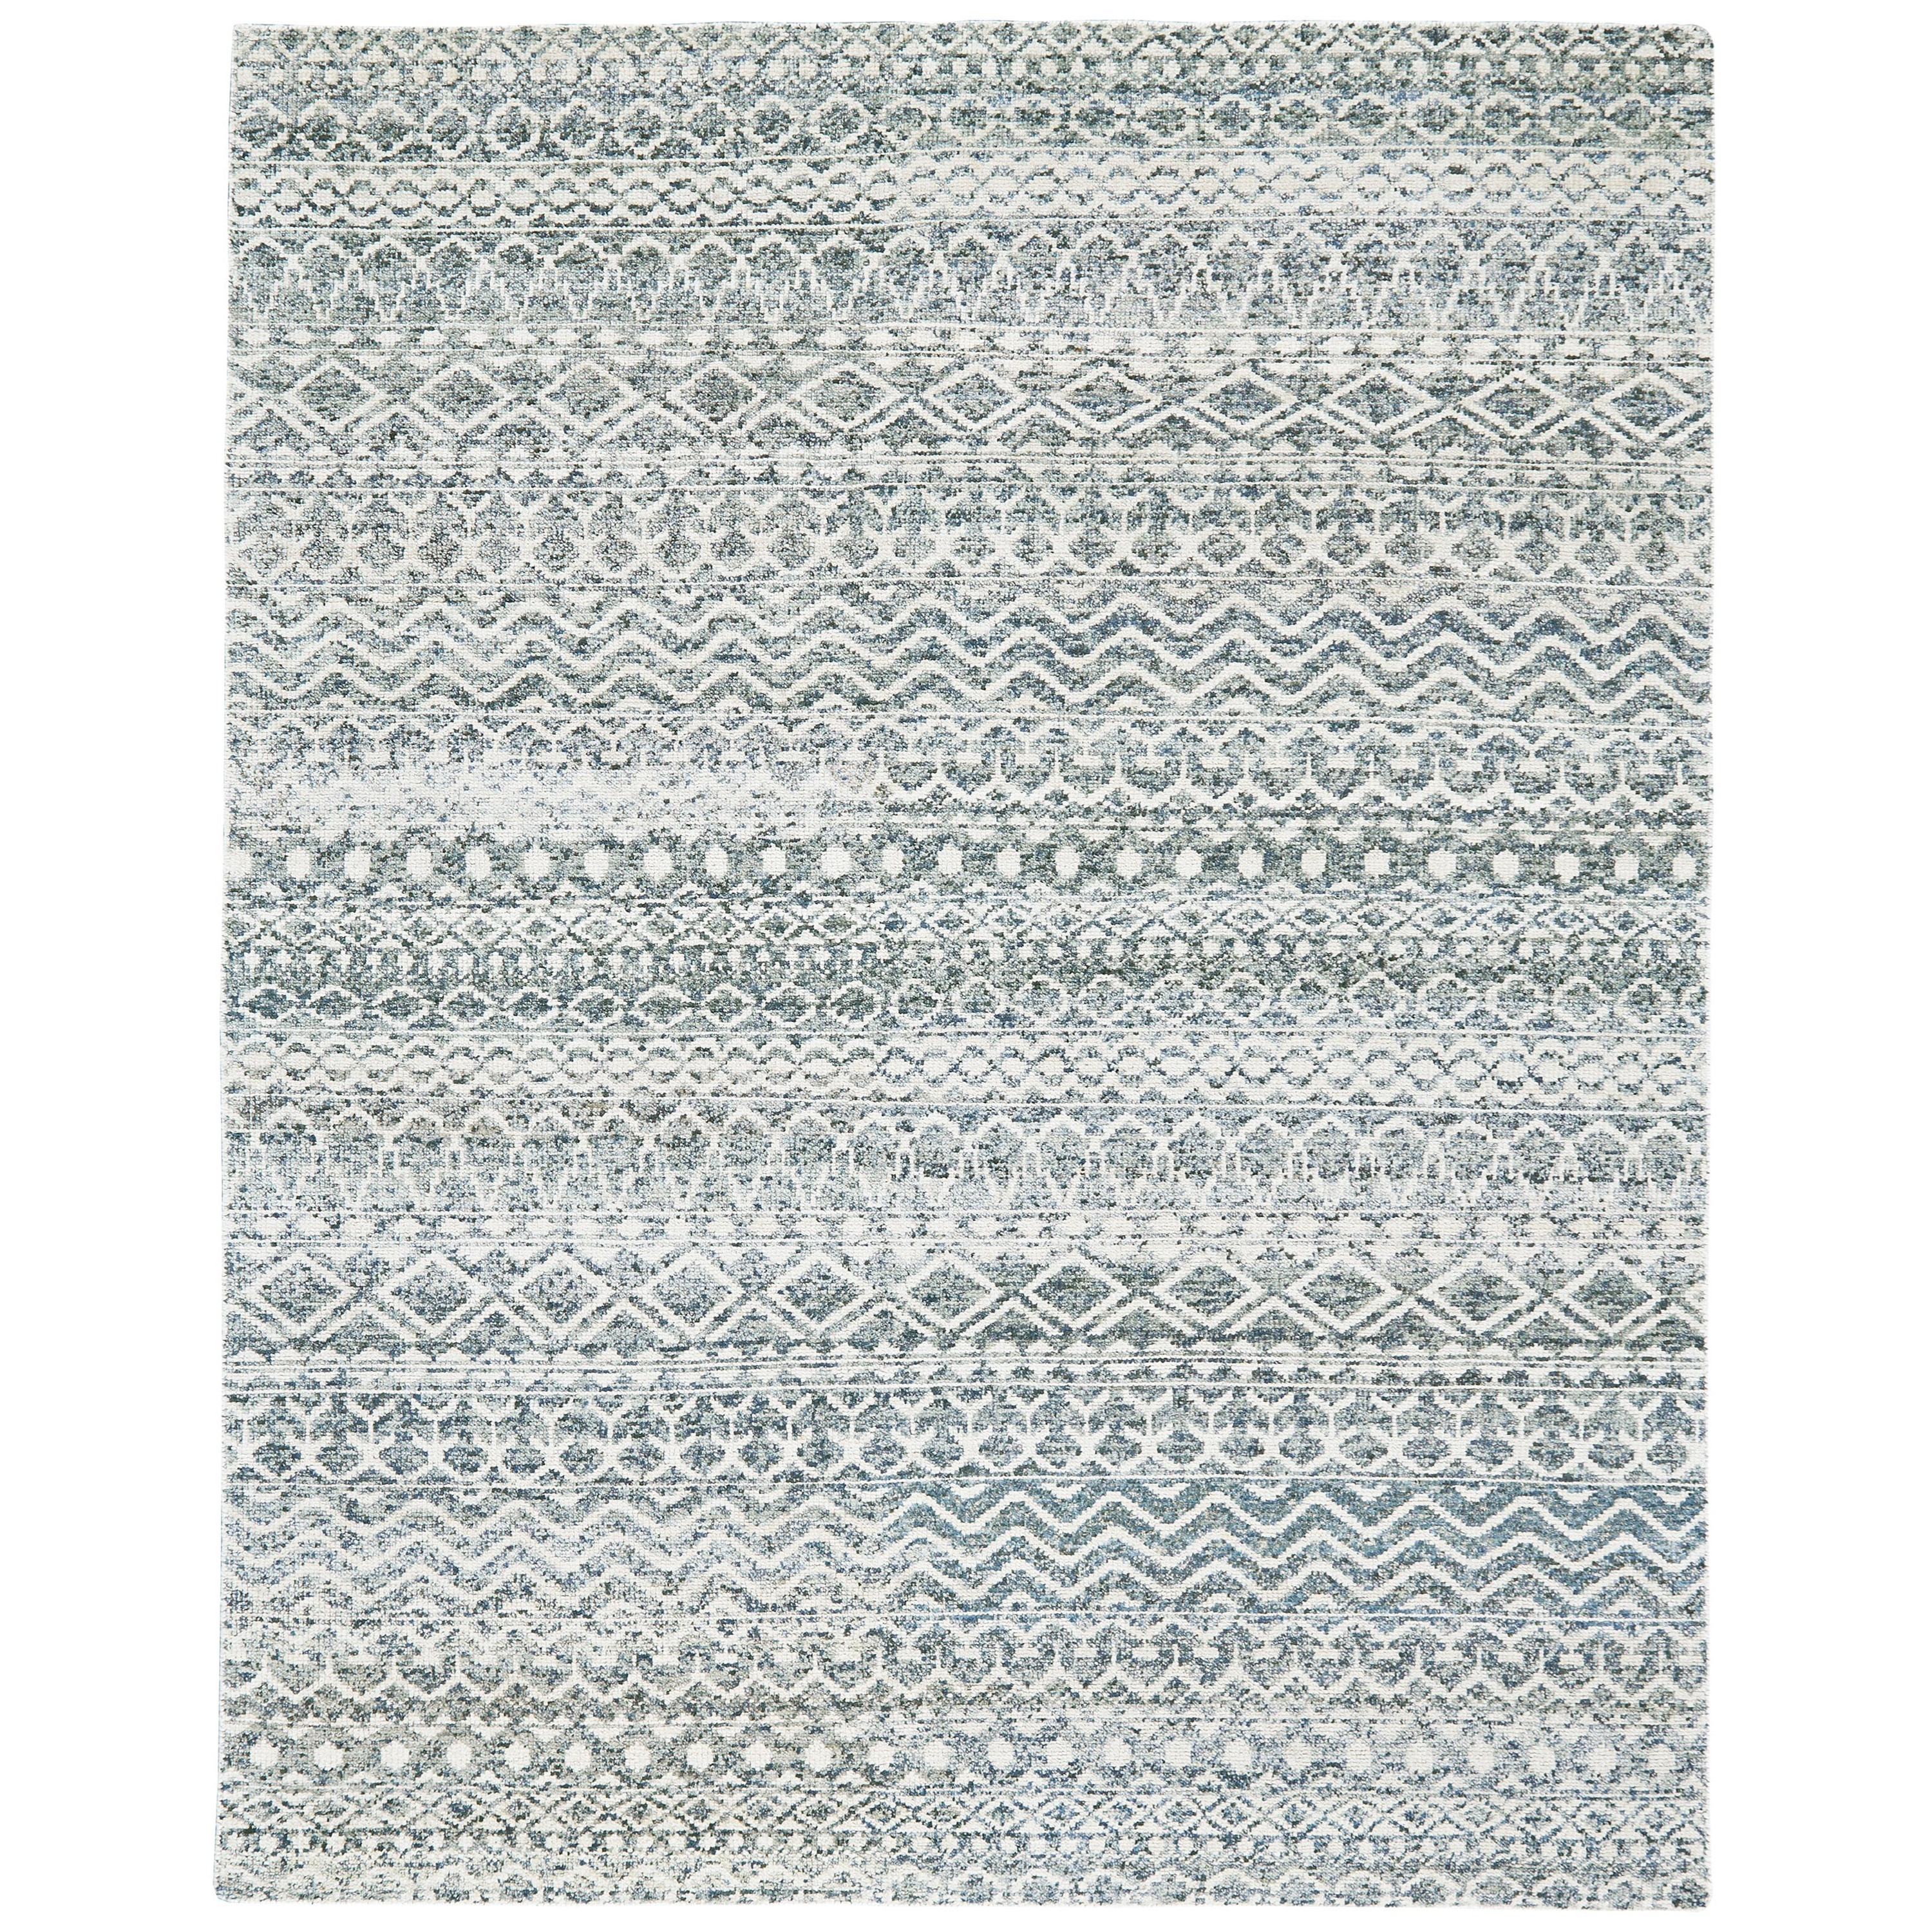 Sattika Haze 4' x 6' Area Rug by Feizy Rugs at Sprintz Furniture